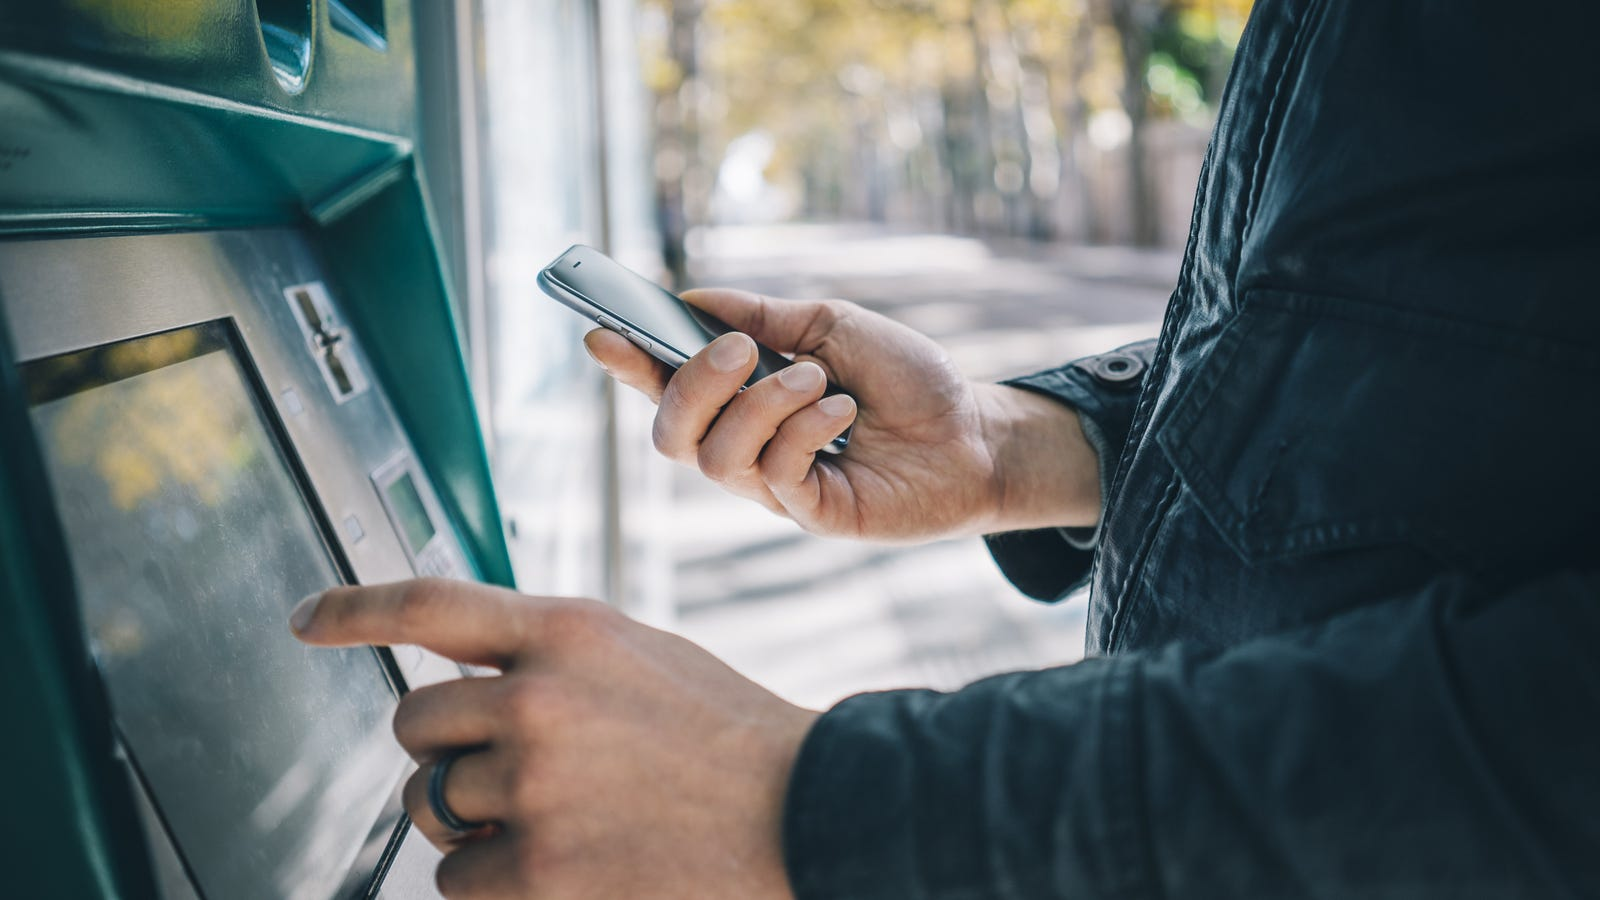 Cardless ATMs Are Here, and So Are Cardless ATM Scams